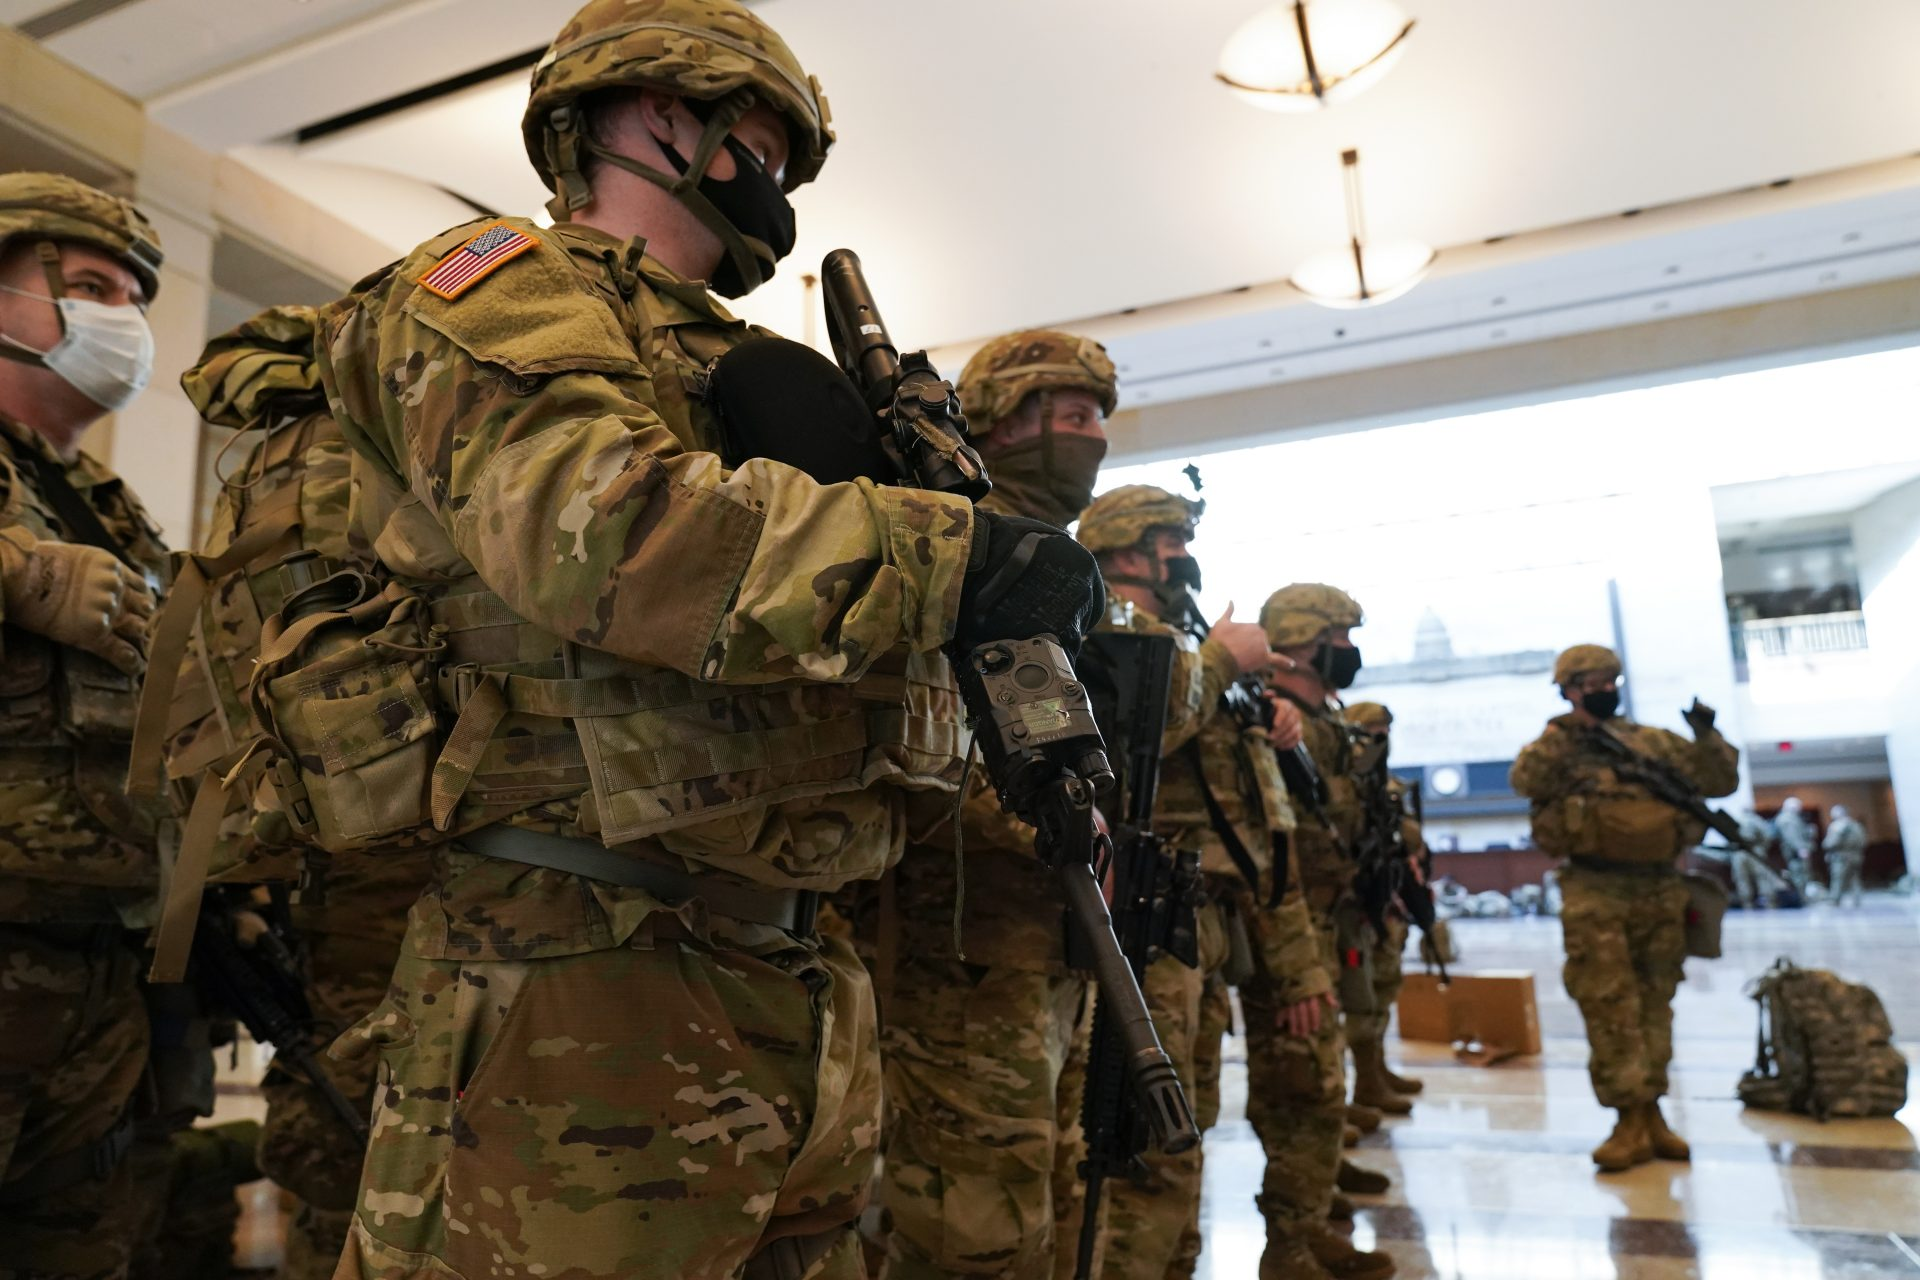 Troops stand in formation inside the Capitol Visitor's Center to reinforce security at the Capitol in Washington, Wednesday, Jan. 13, 2021. The House of Representatives is pursuing an article of impeachment against President Donald Trump for his role in inciting an angry mob to storm the Capitol last week.